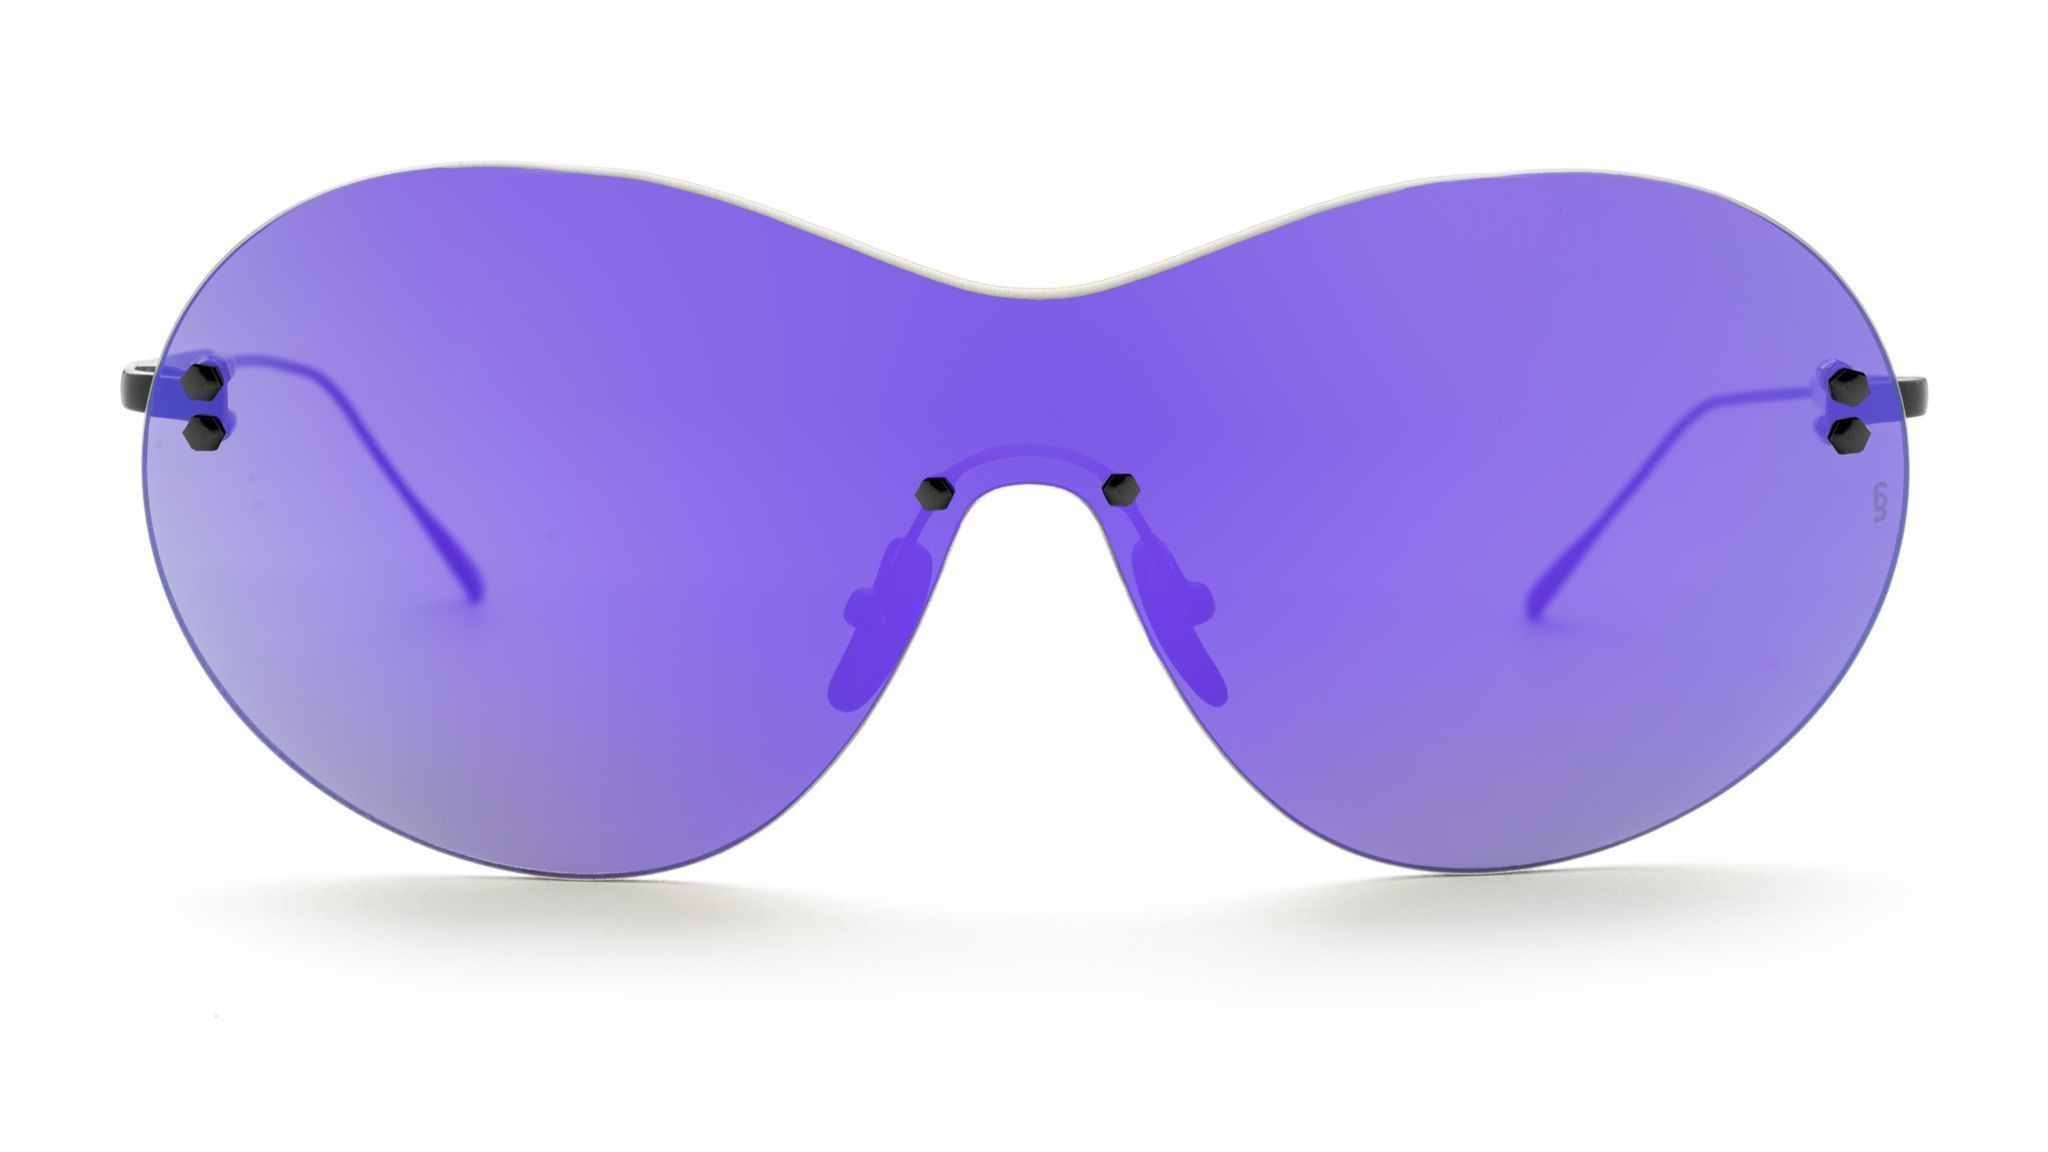 British brand Sunday Somewhere has these cool sunnies in a few colors.